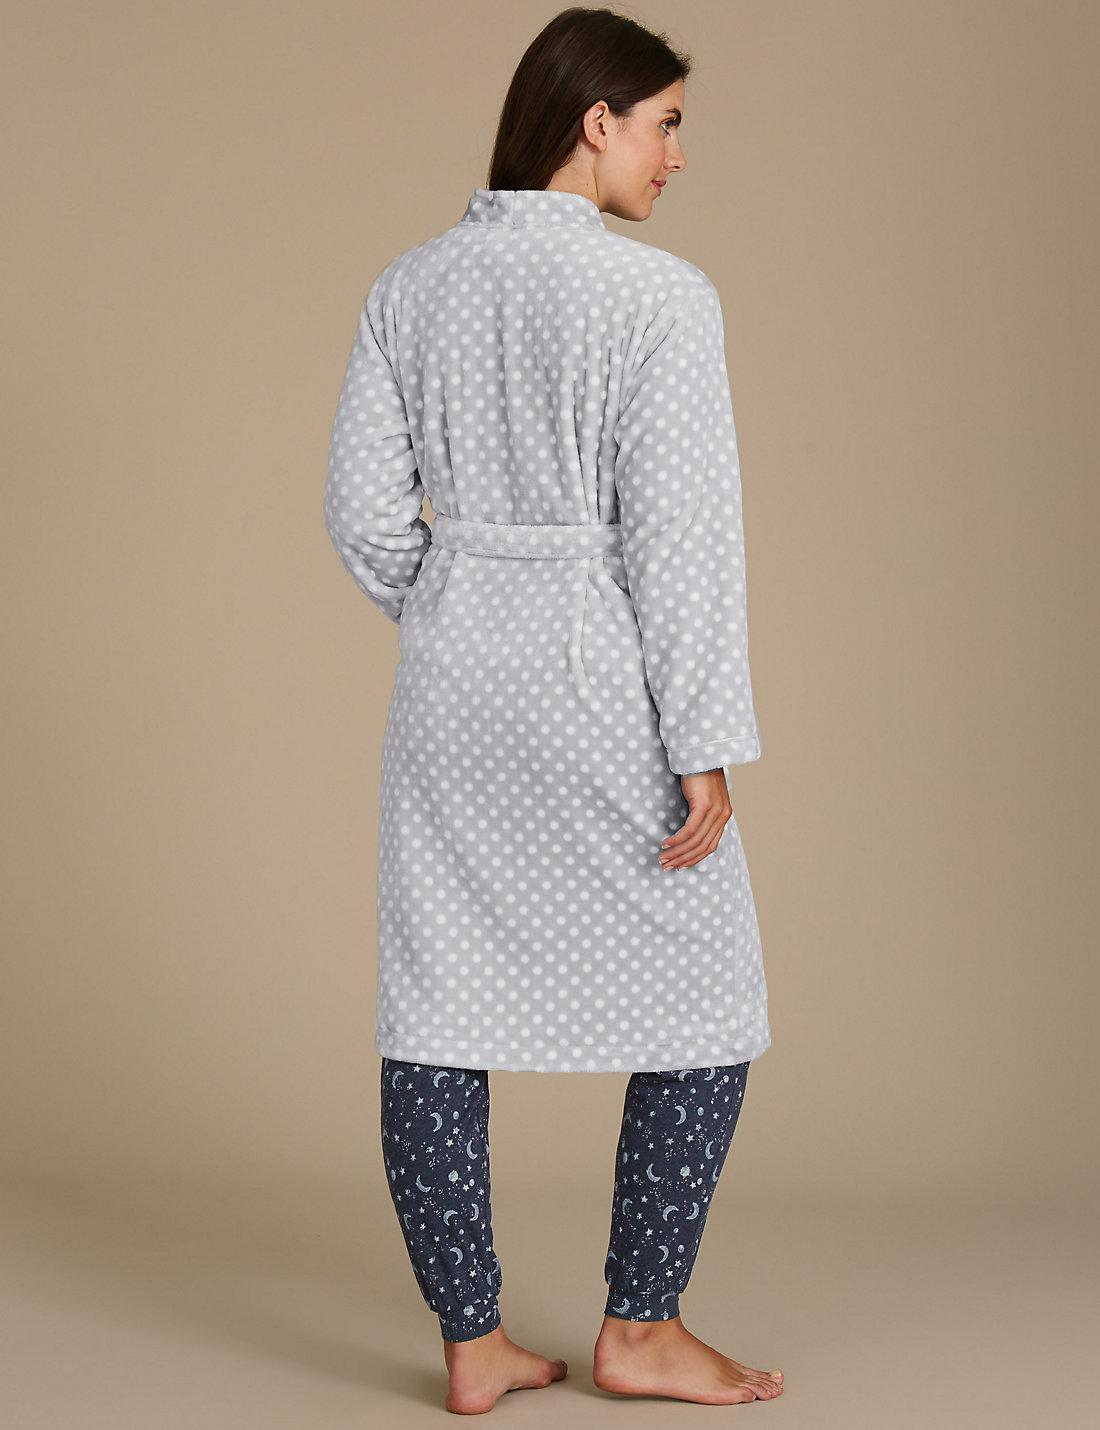 Awesome Per Una Dressing Gown Inspiration - Images for wedding gown ...